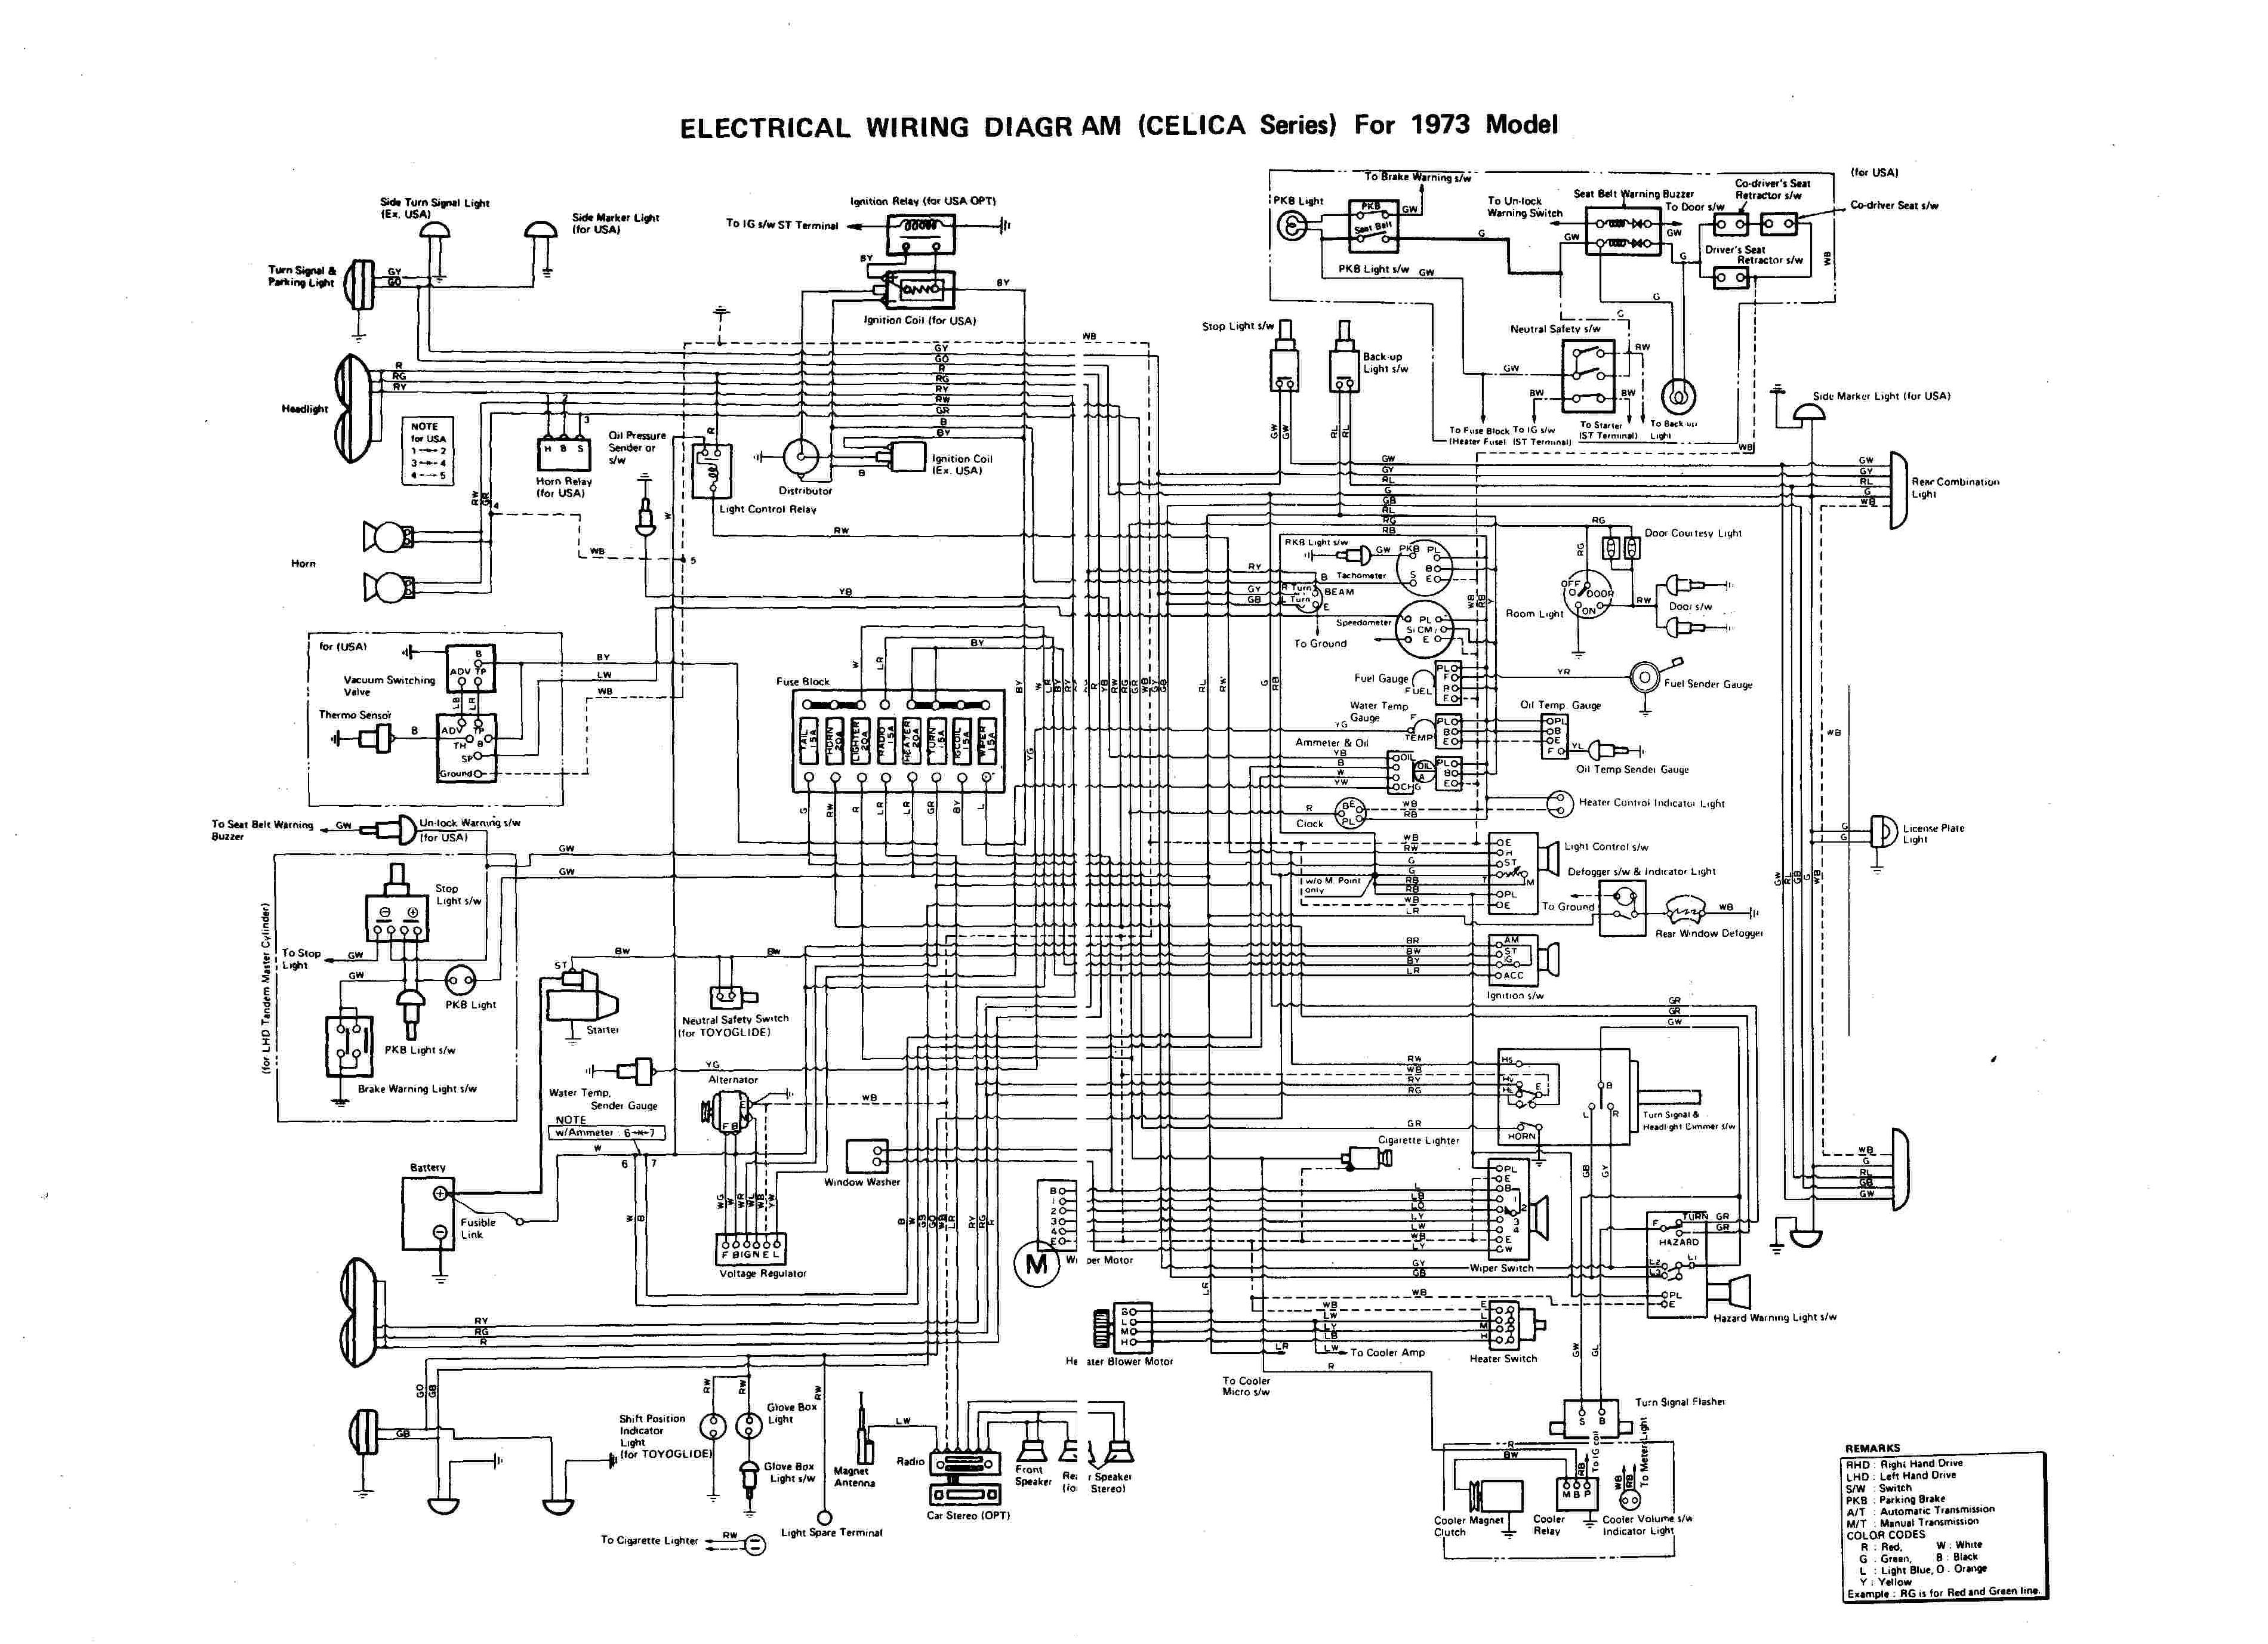 Wiring Harness Trailers - Auto Electrical Wiring Diagram | Coachmen Wiring Diagrams For 1993 |  | Wiring Diagram